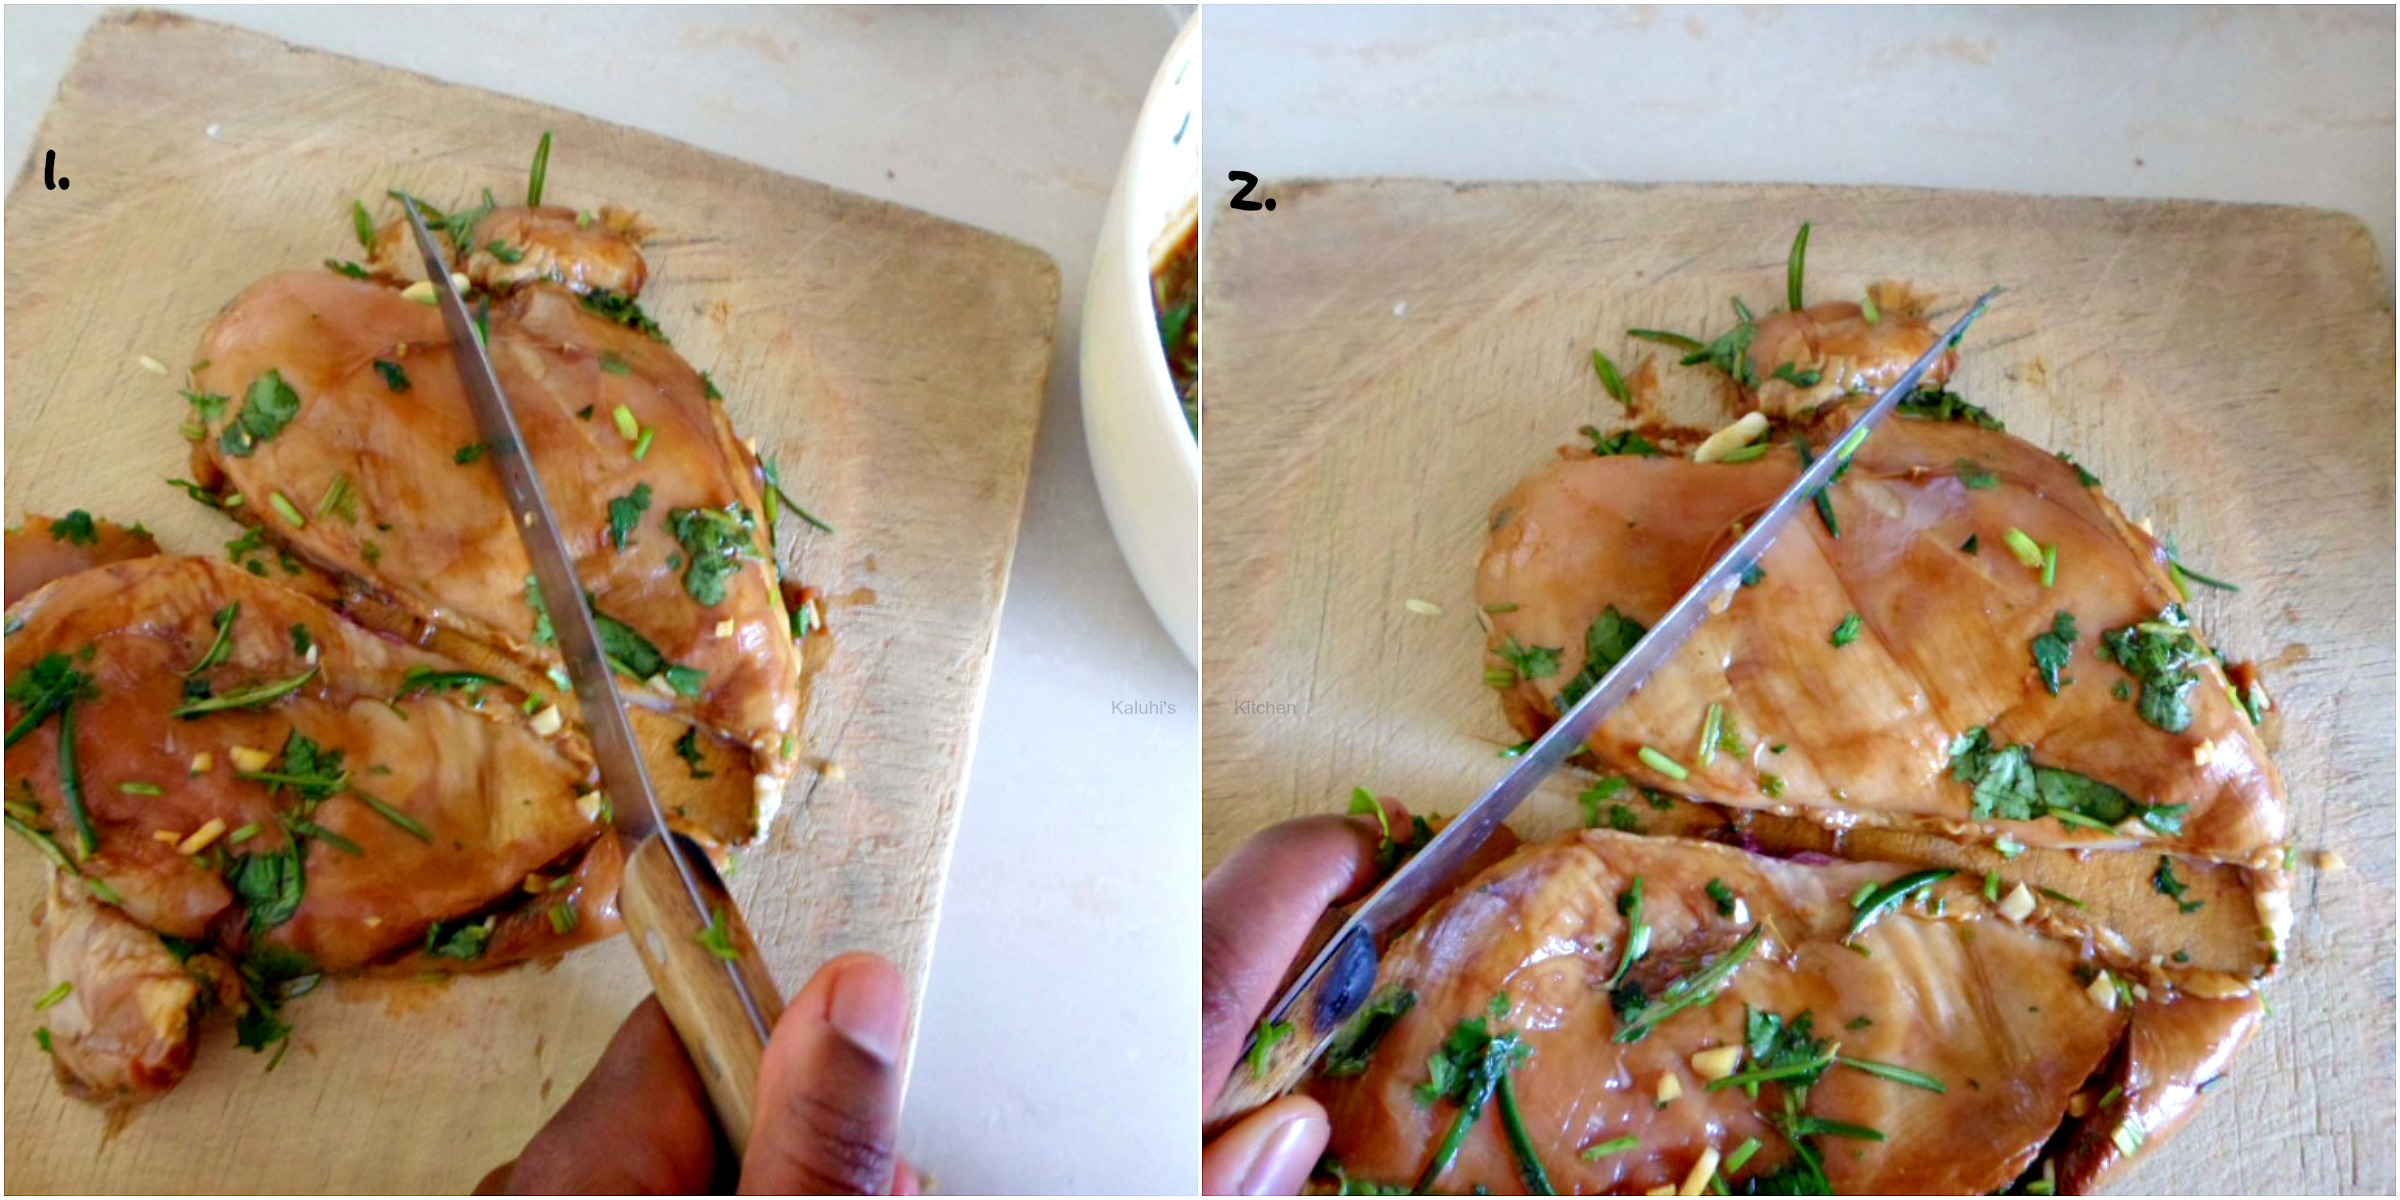 How to cut chicken breast